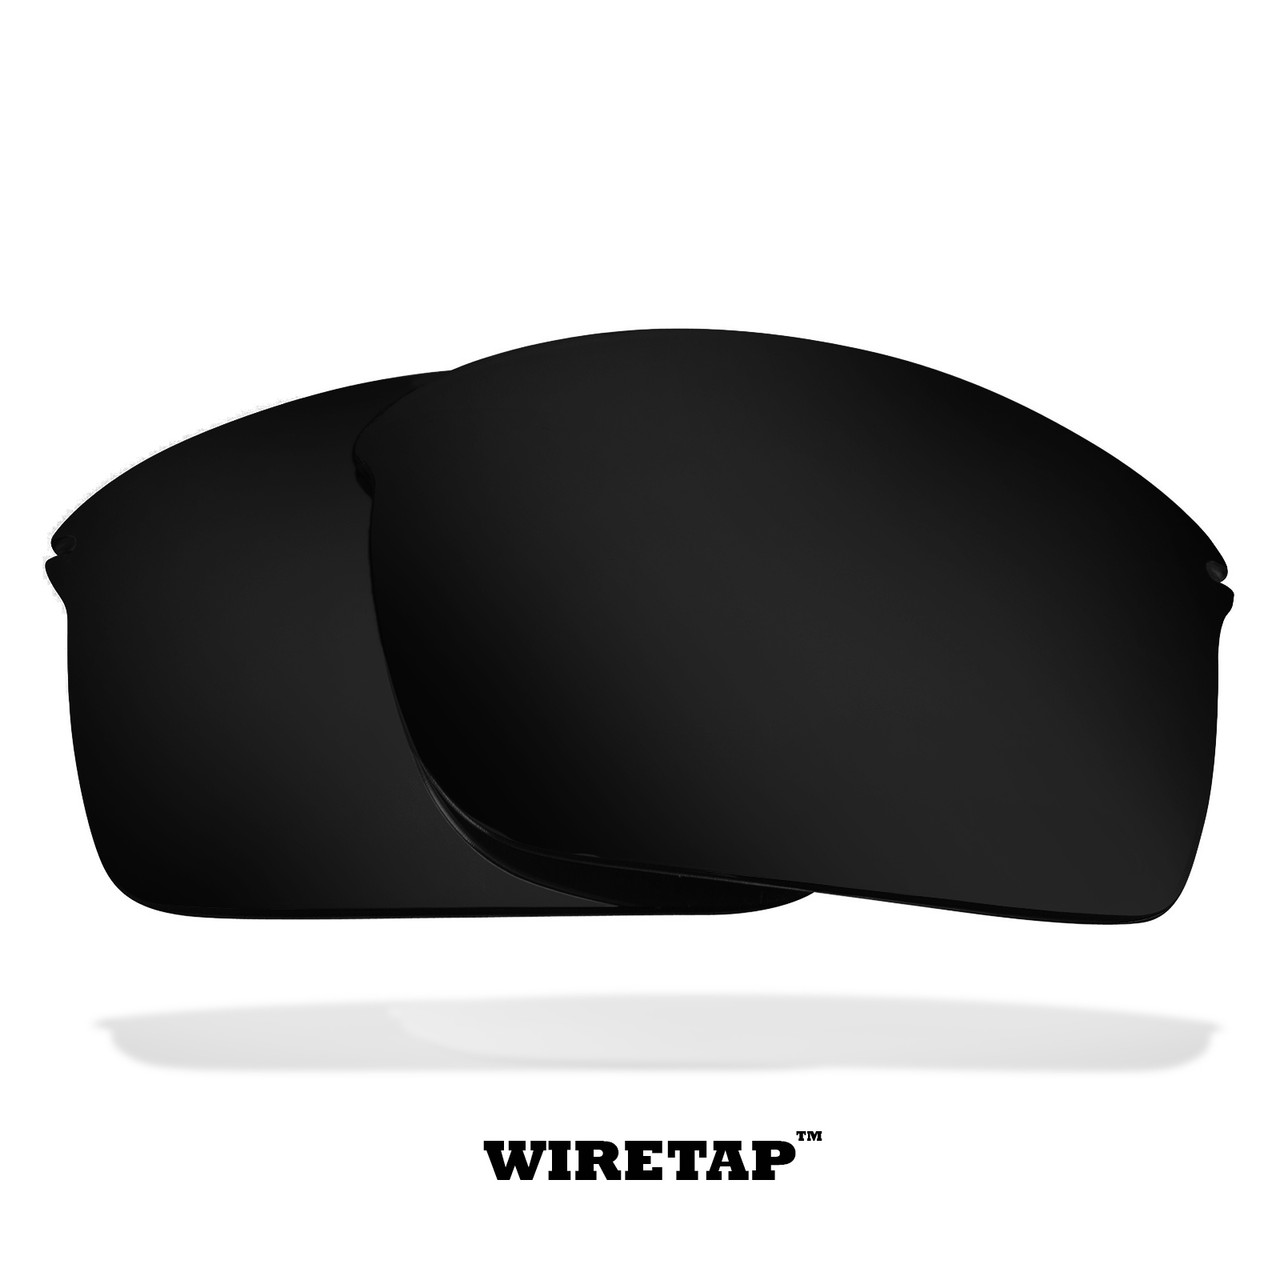 d49e7126e0 Fits Oakley Wiretap - Seek Optics